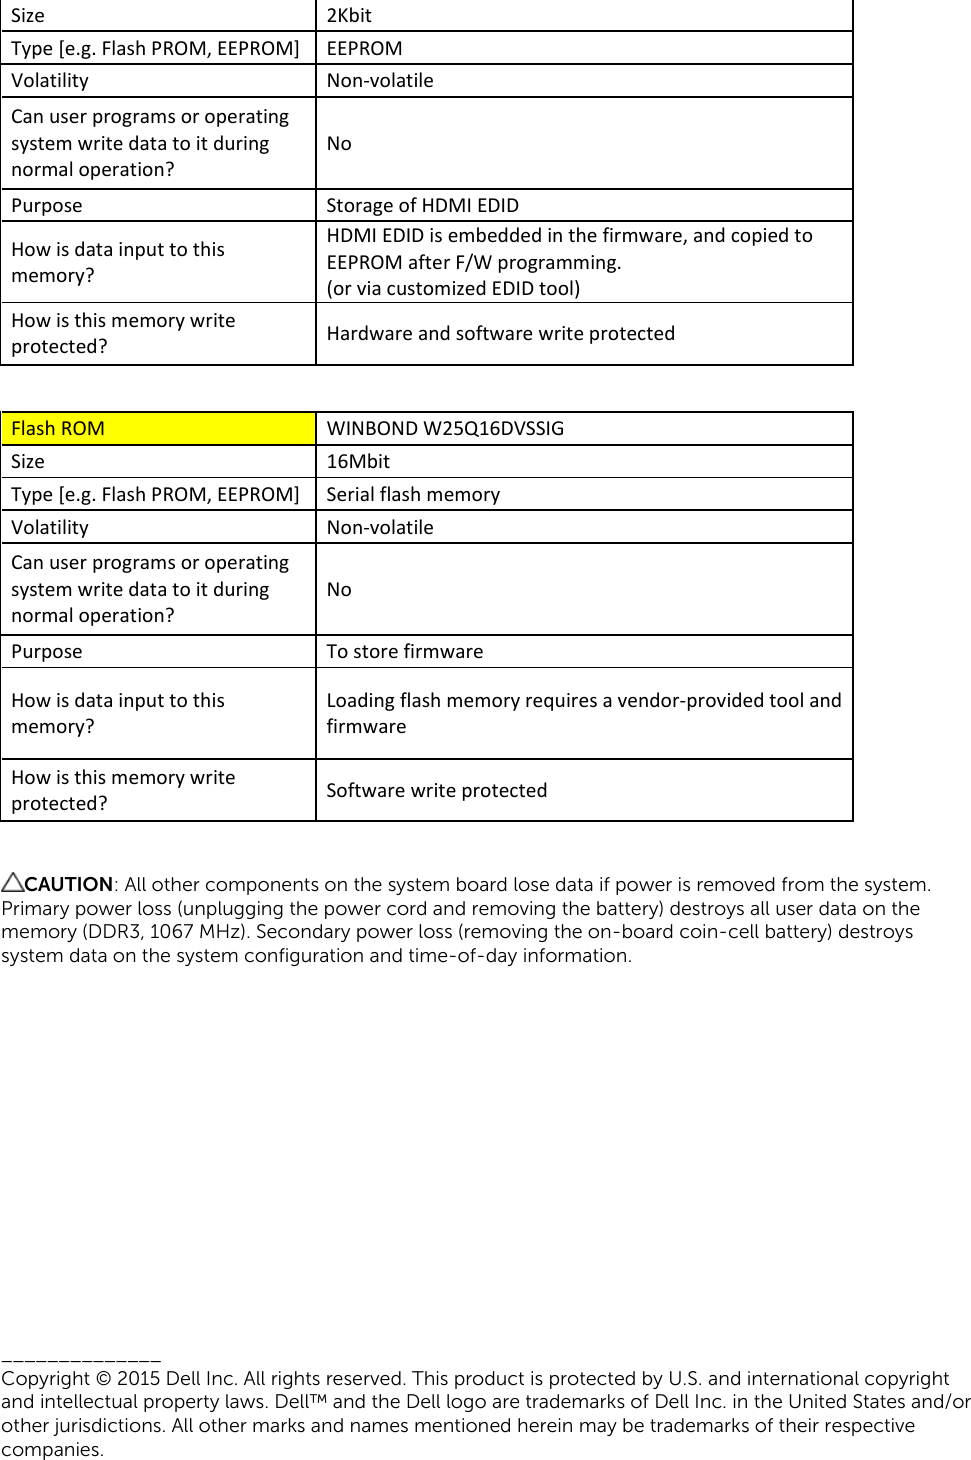 Dell p2416d Statement Of Volatility User Manual White Papers1 En us